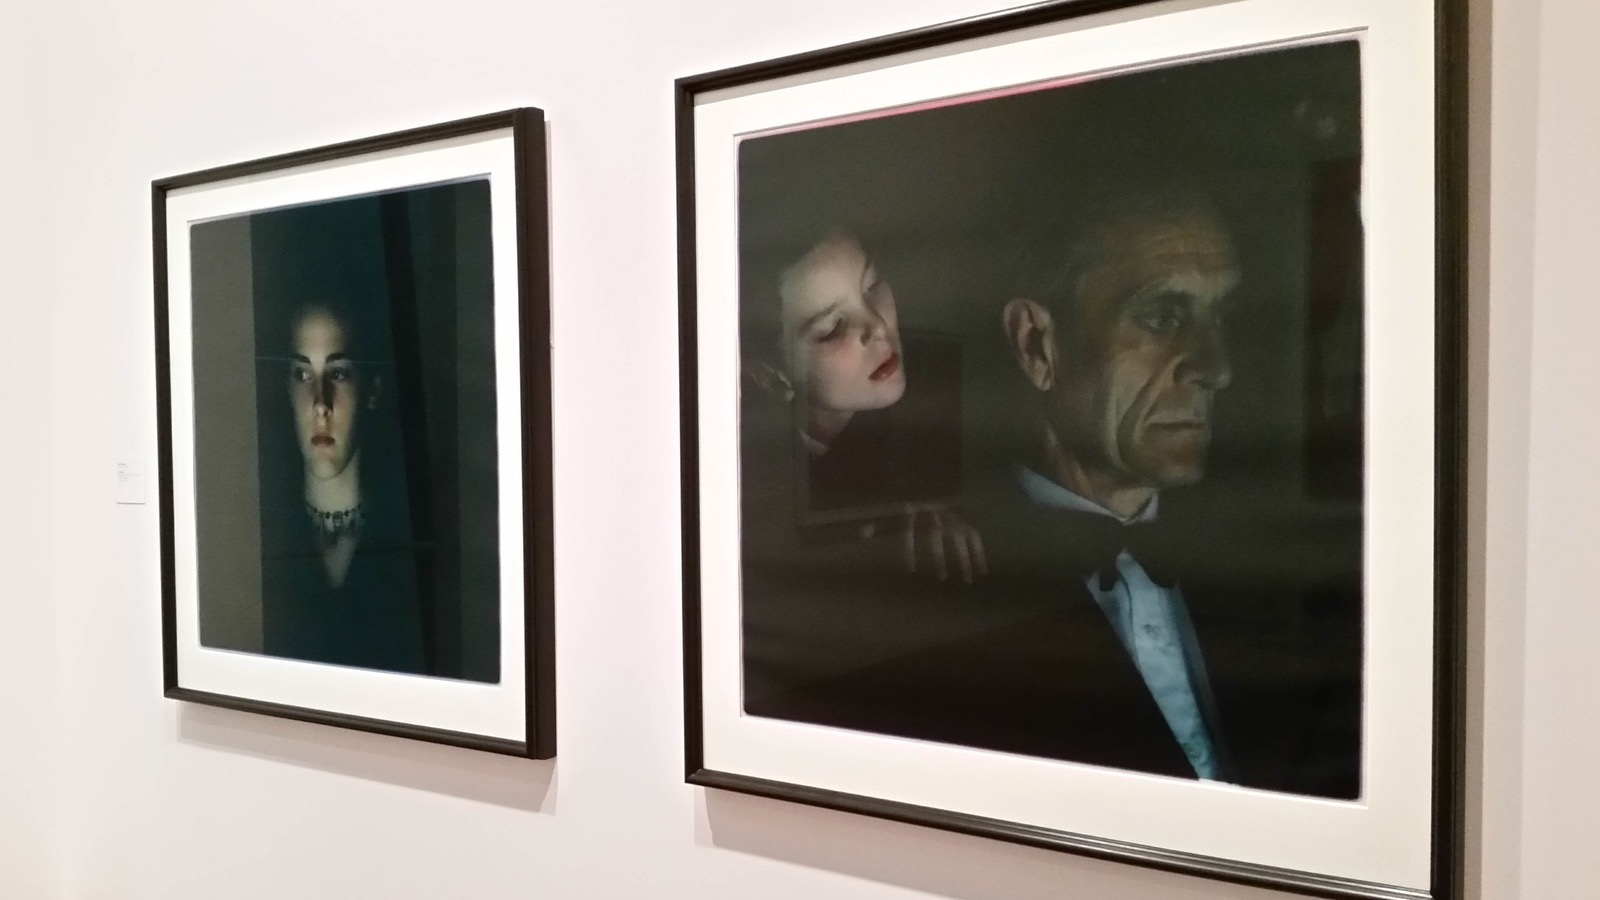 Artworks: Bill Henson